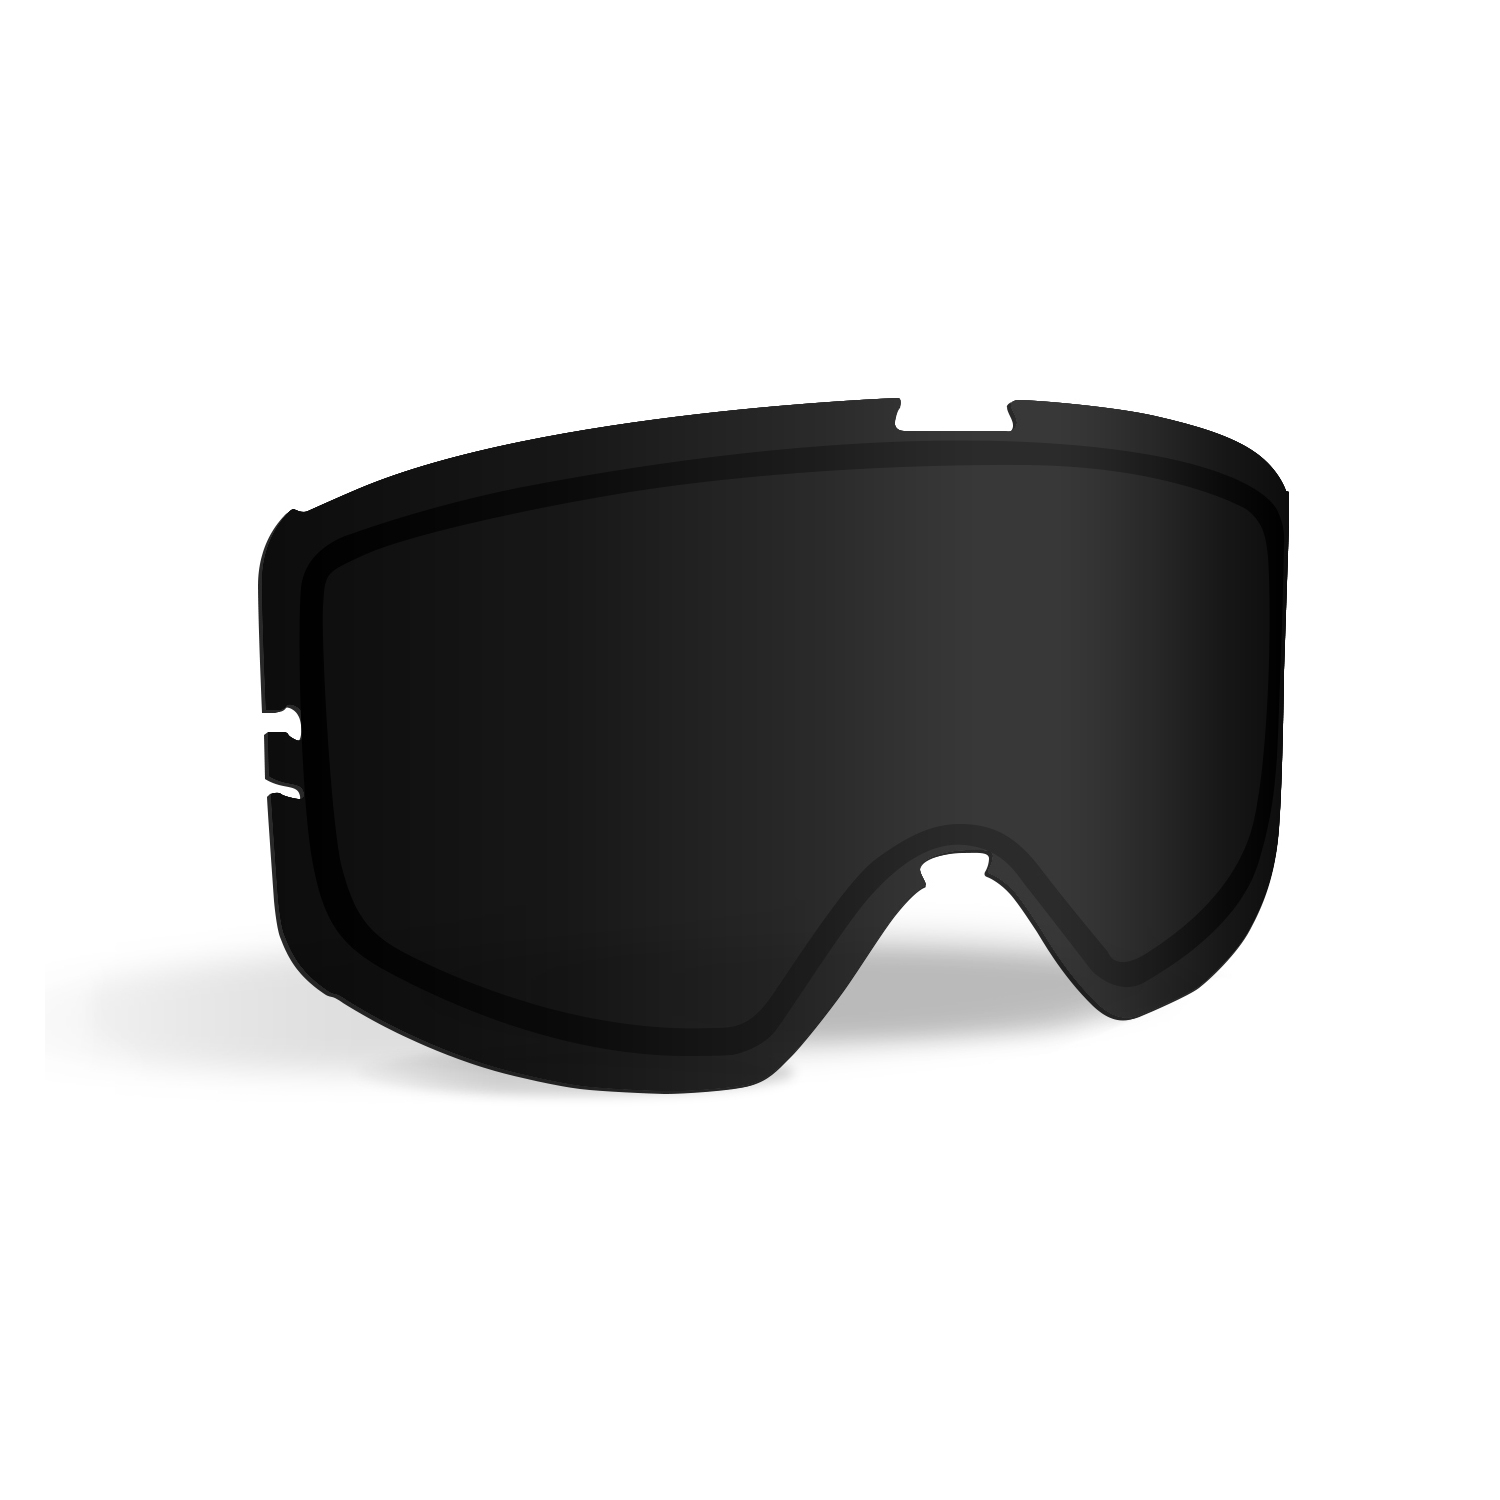 509® Kingpin Dirt Adult Goggle Replacement Lens with Quick-Change Technology, Smoke